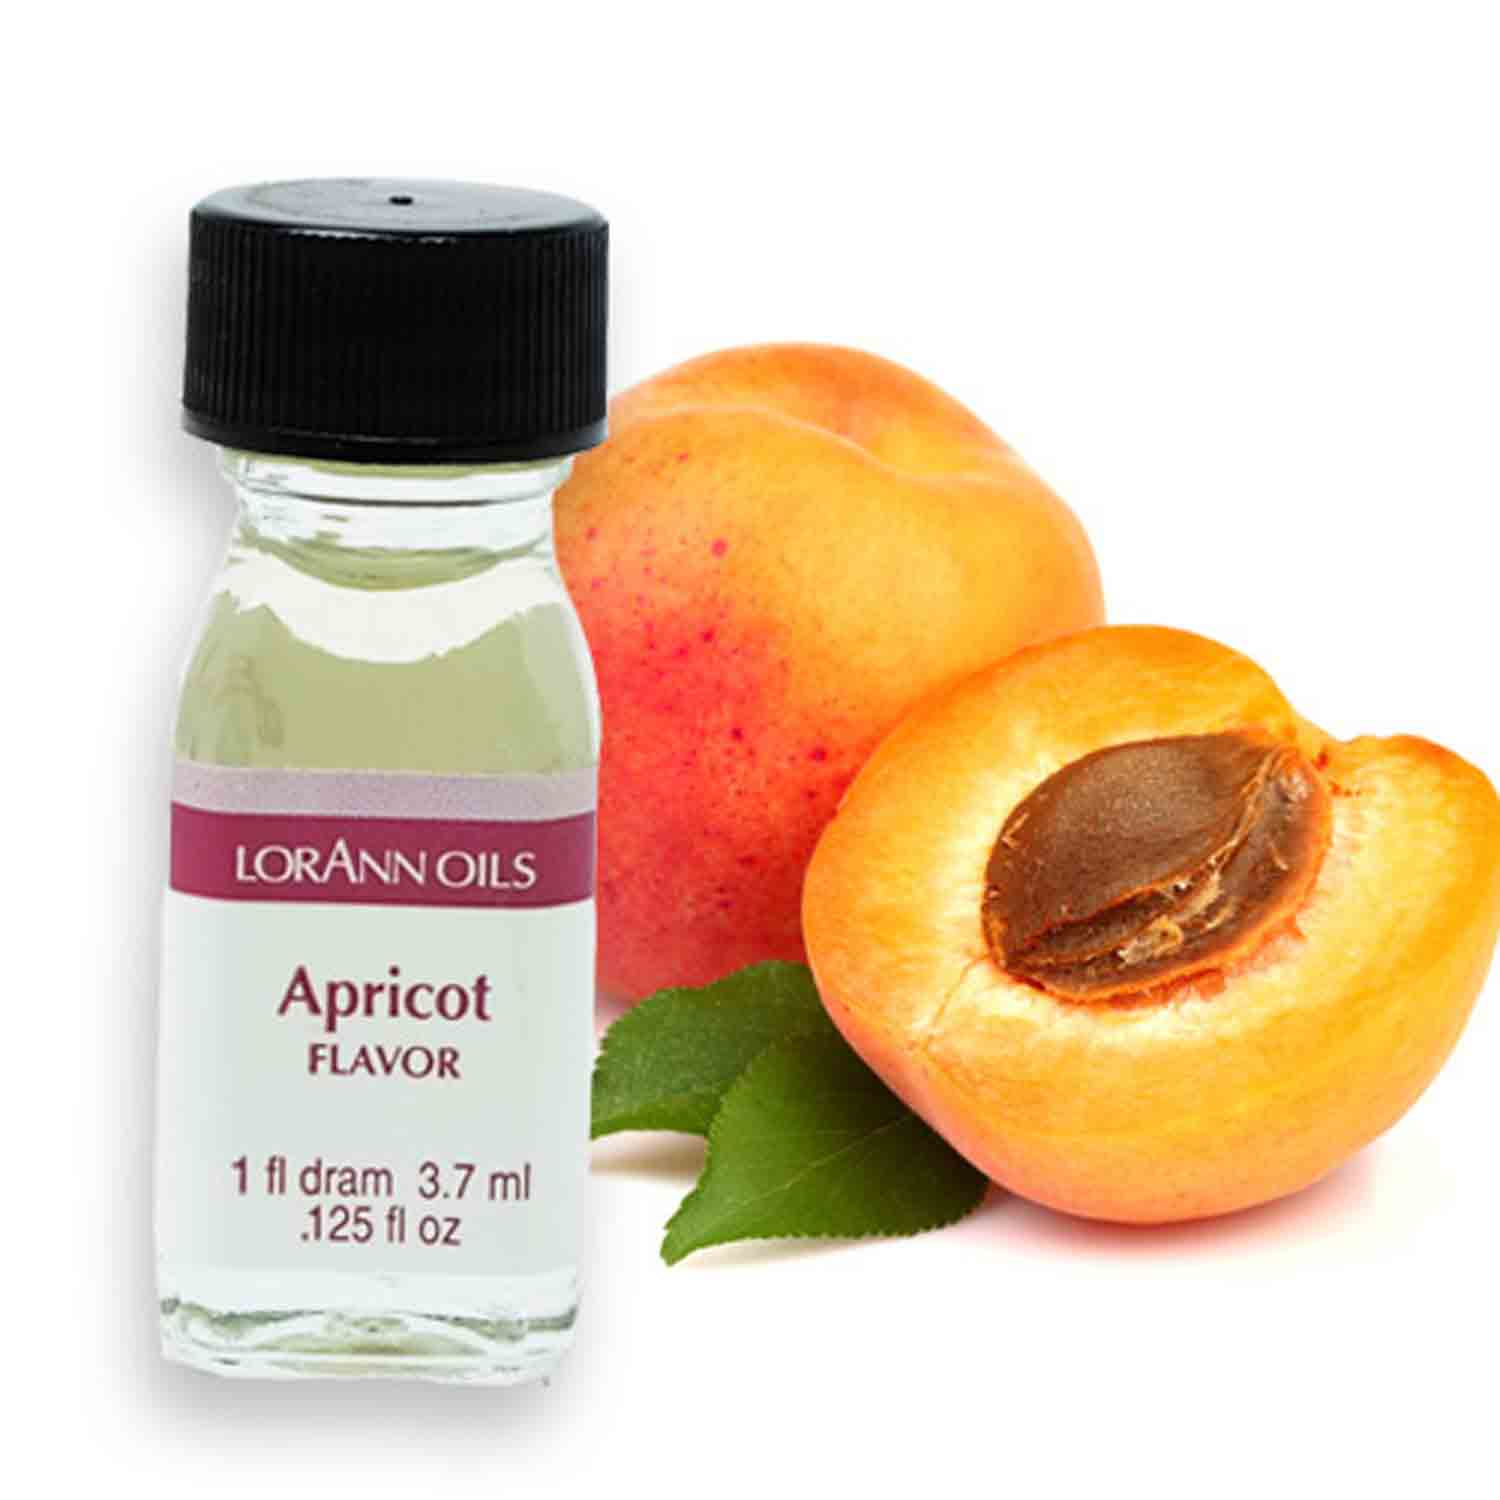 Apricot LorAnn Super-Strength Flavor